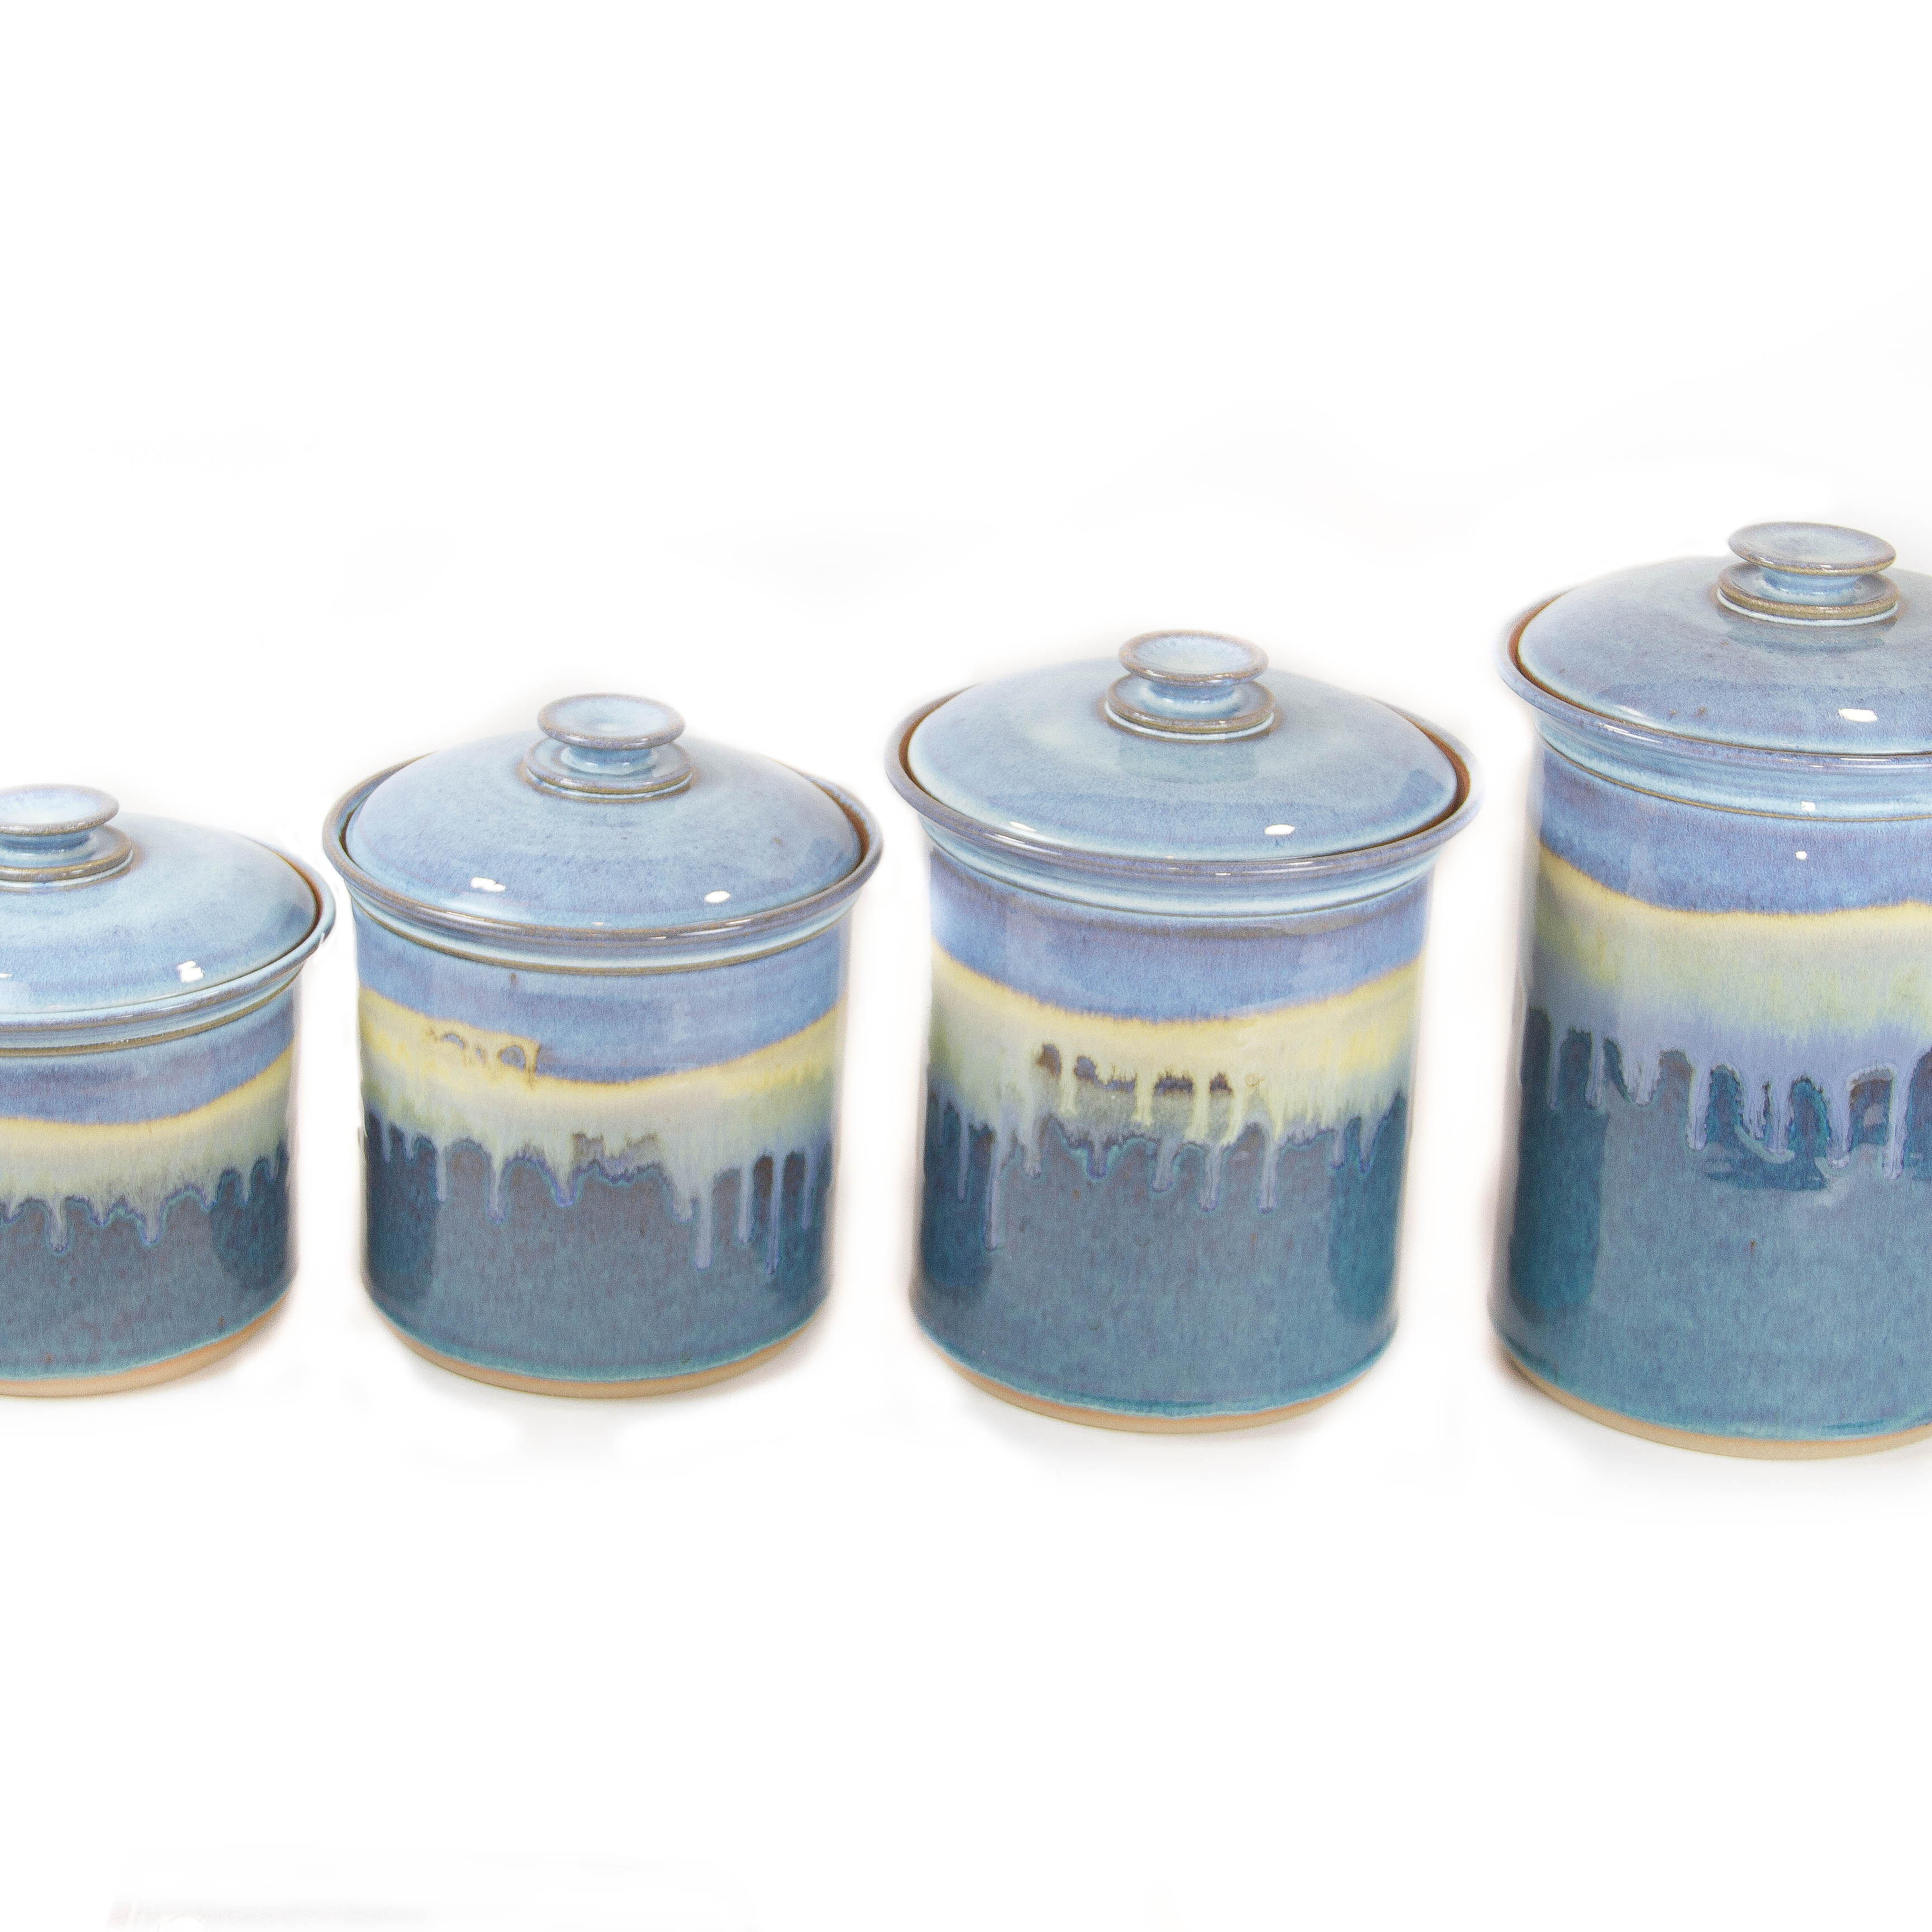 100 pottery kitchen canisters fiestaware ceramic kitchen